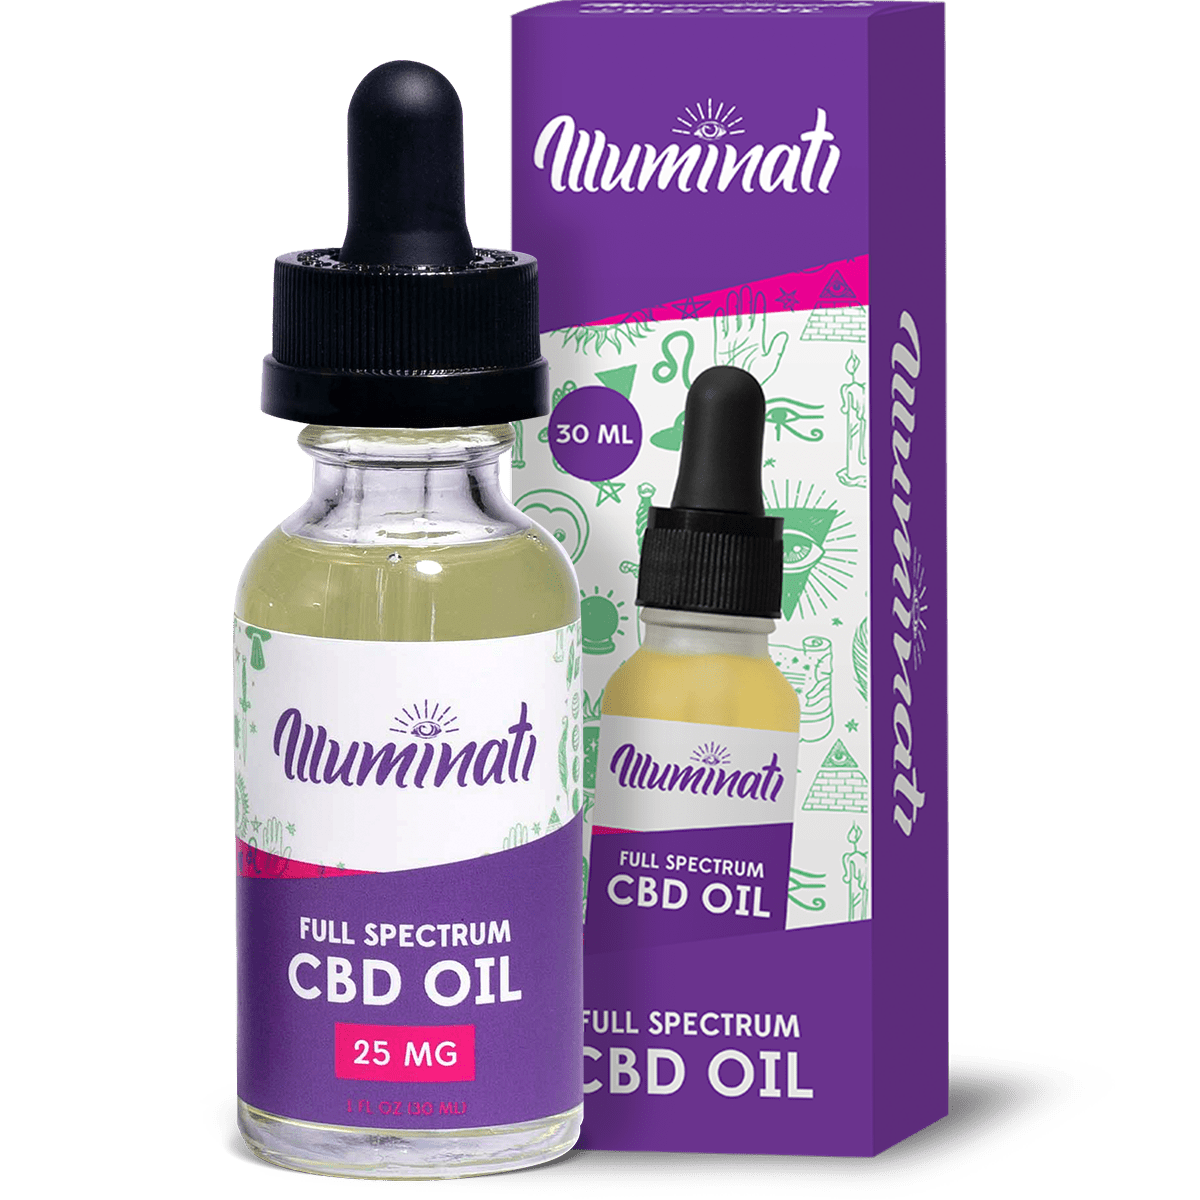 Illuminati Full Spectrum CBD Oil Drops 25mg Front